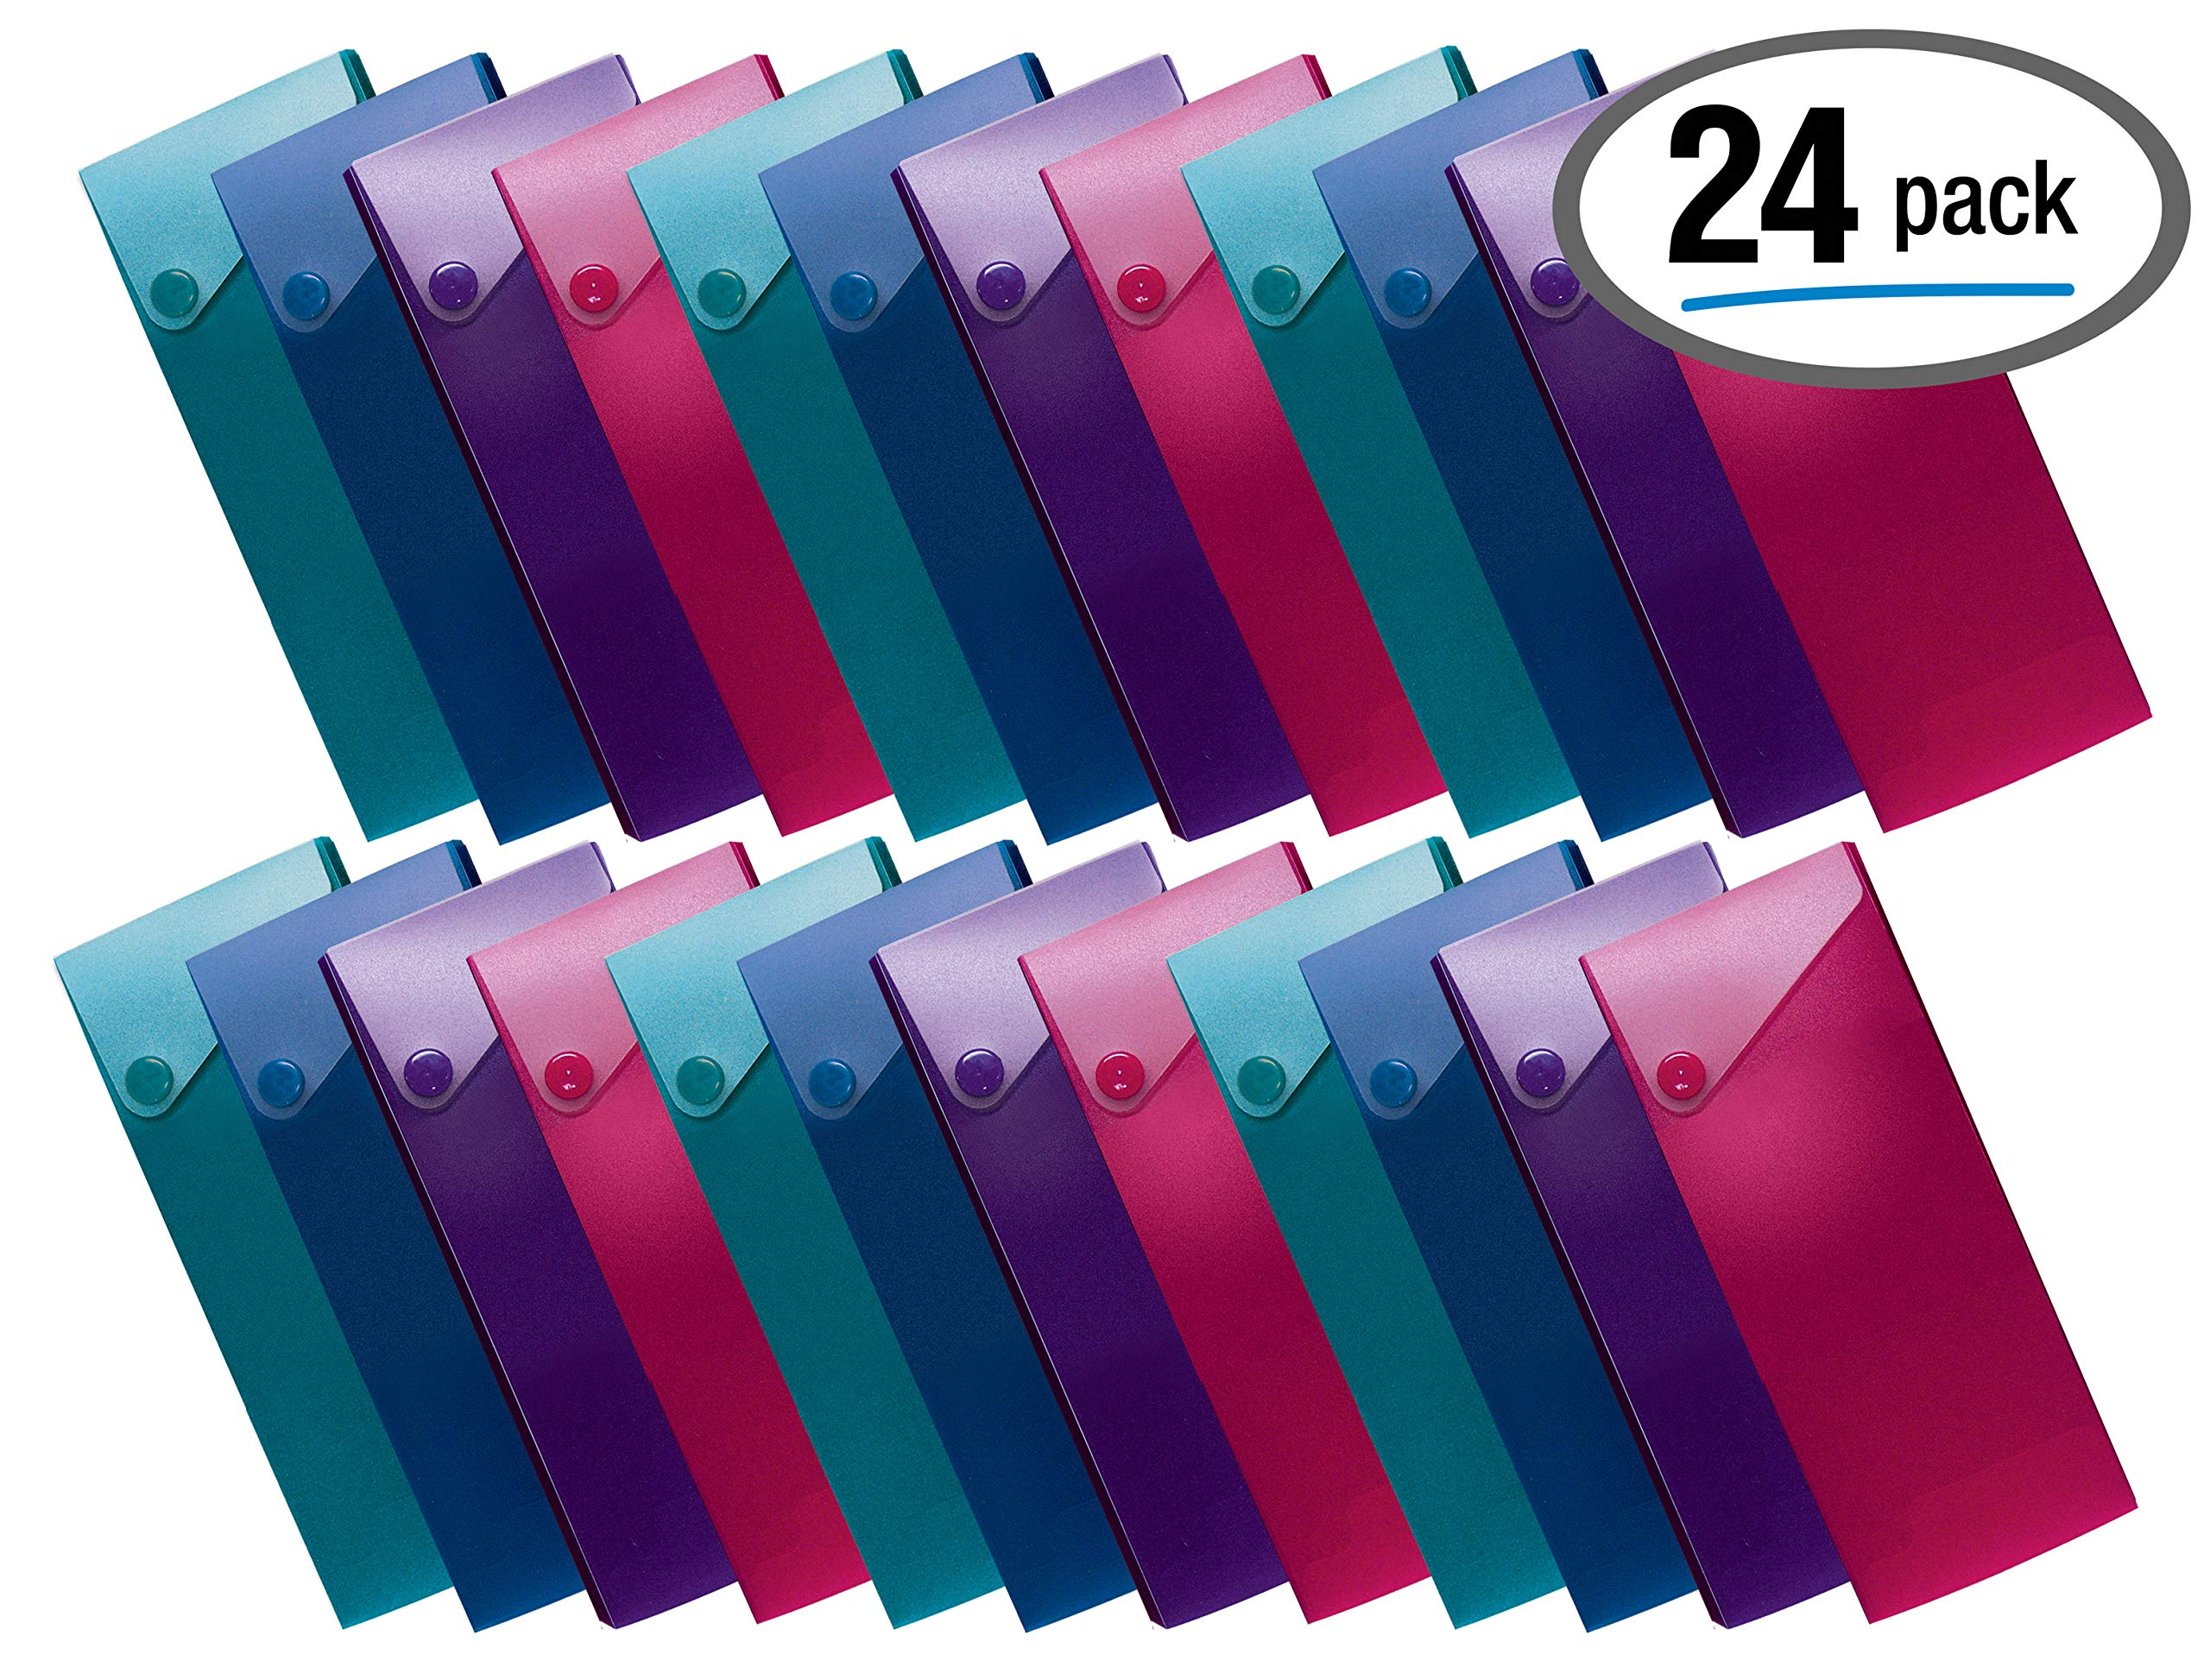 Slider Pencil Case, Box of 24, Semi-Rigid Poly Plastic with Button Snap Closure, Assorted Colors, by Better Office Products by Better Office Products